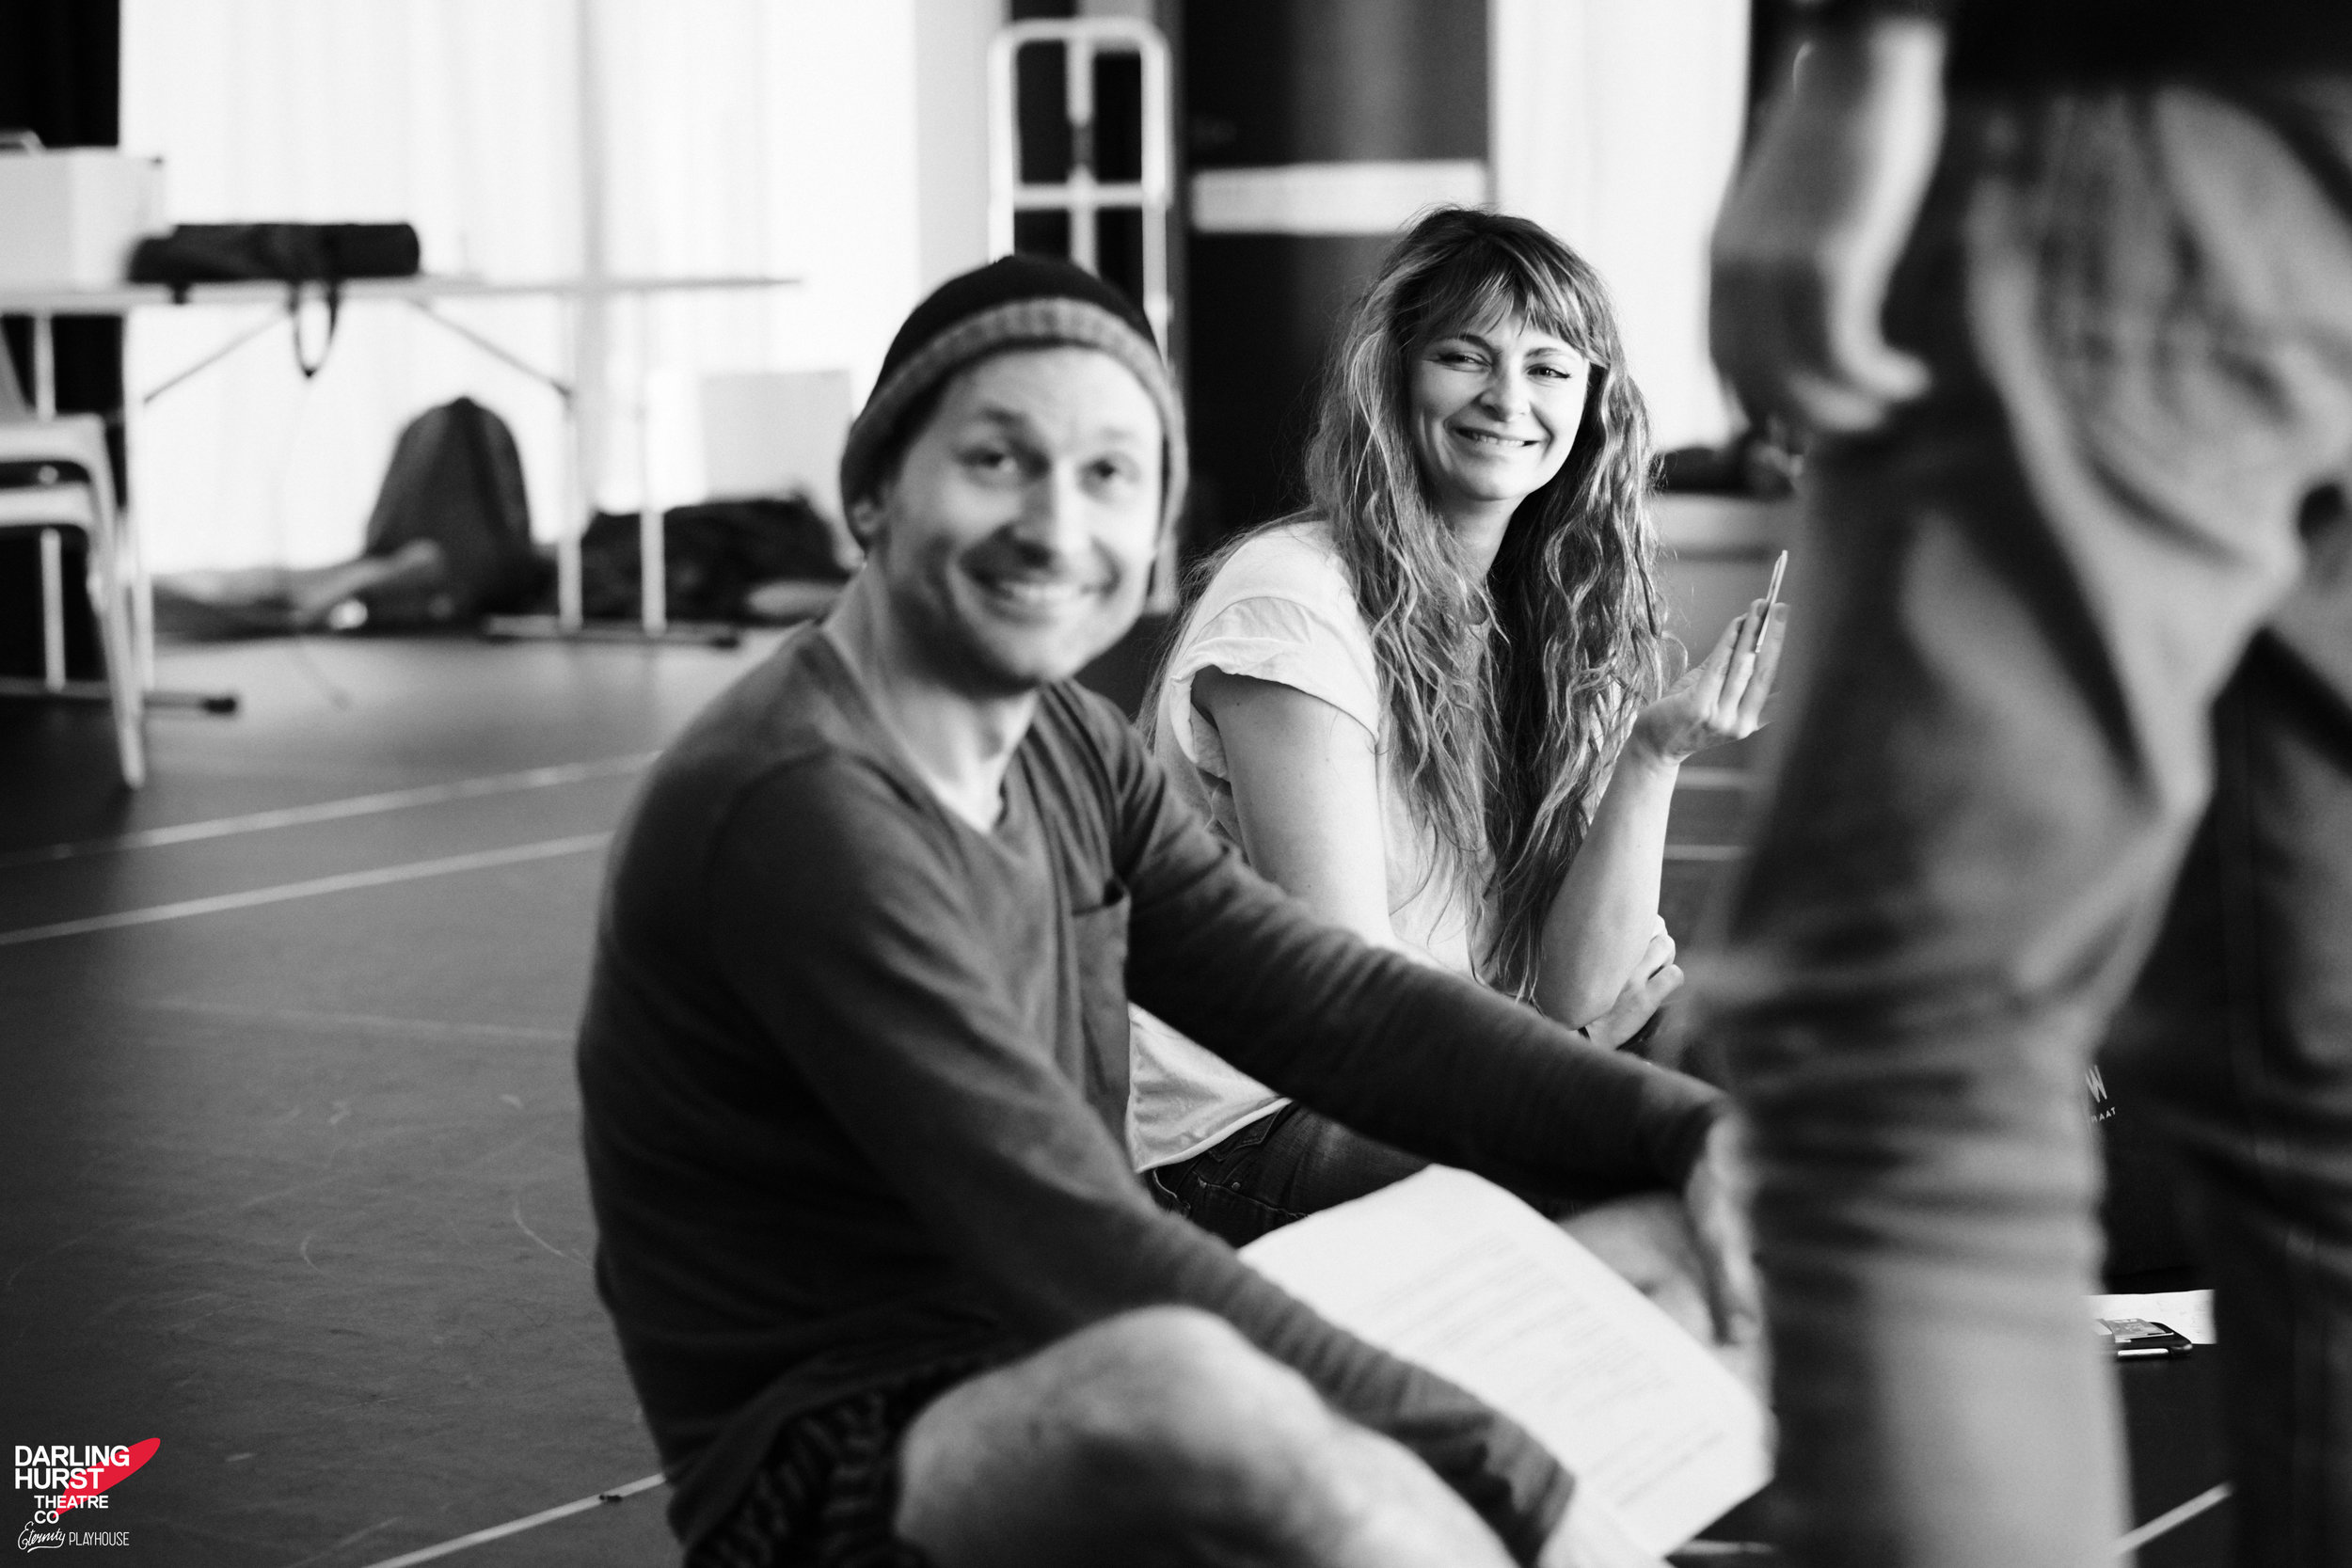 Small Mouth Sounds - As we continue our series of sit-downs with the cast of the next show at Darlinghurst Theatre Co, Amber McMahon shares some of her irrepressible energy.Rehearsal photos of the Darlinghurst Theatre Company production by Robert Catto.